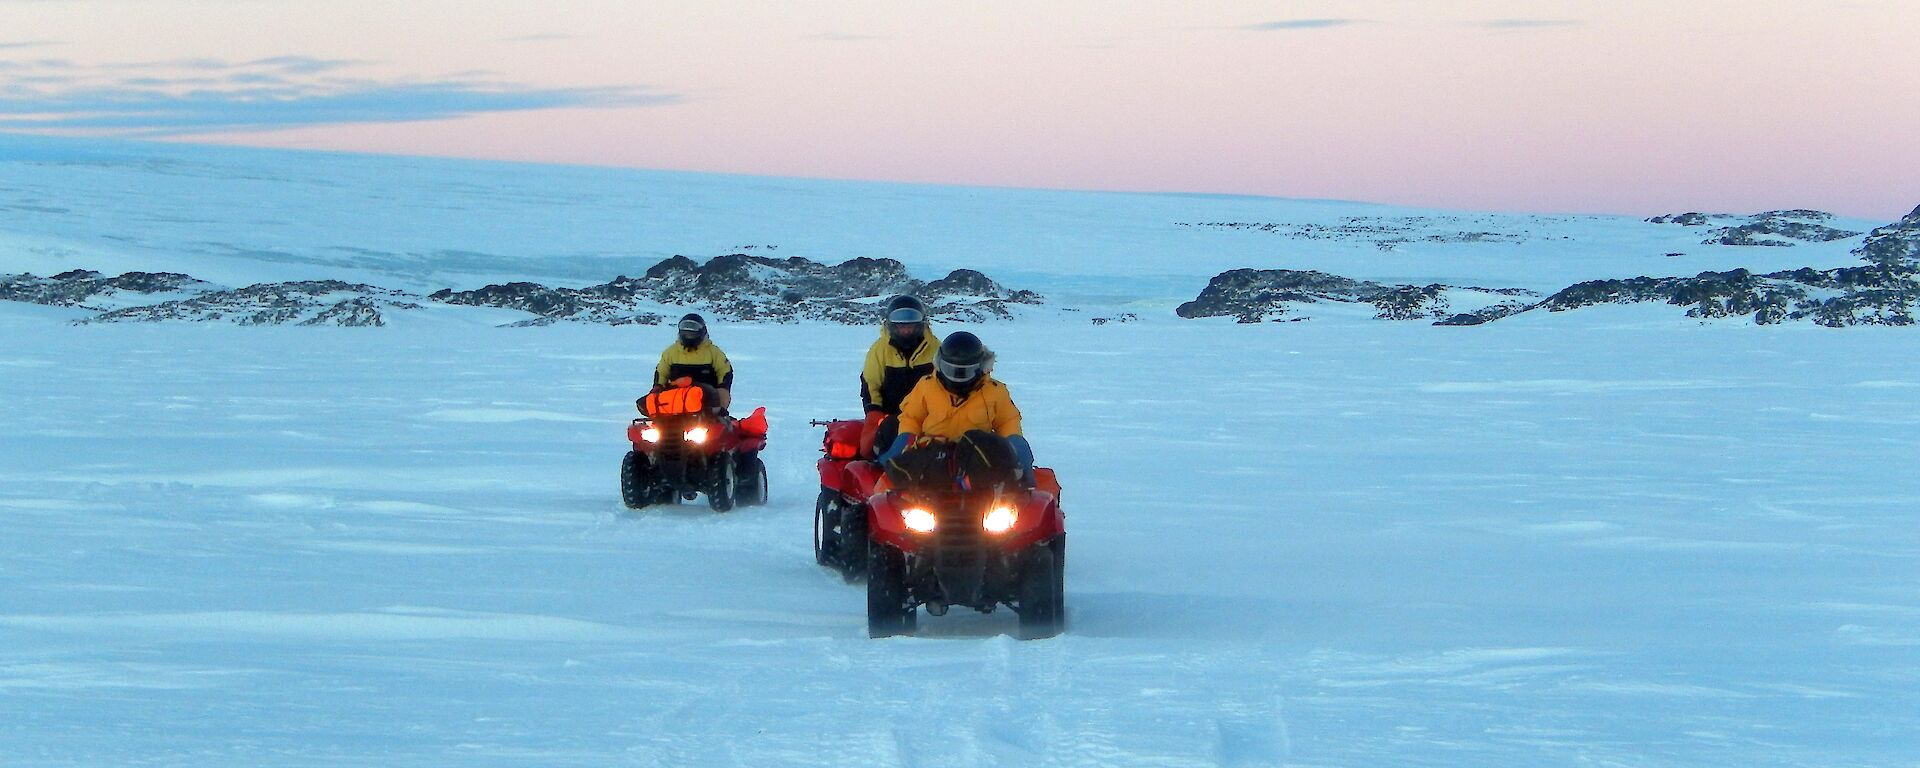 Three expeditioners riding quad bikes on the sea ice